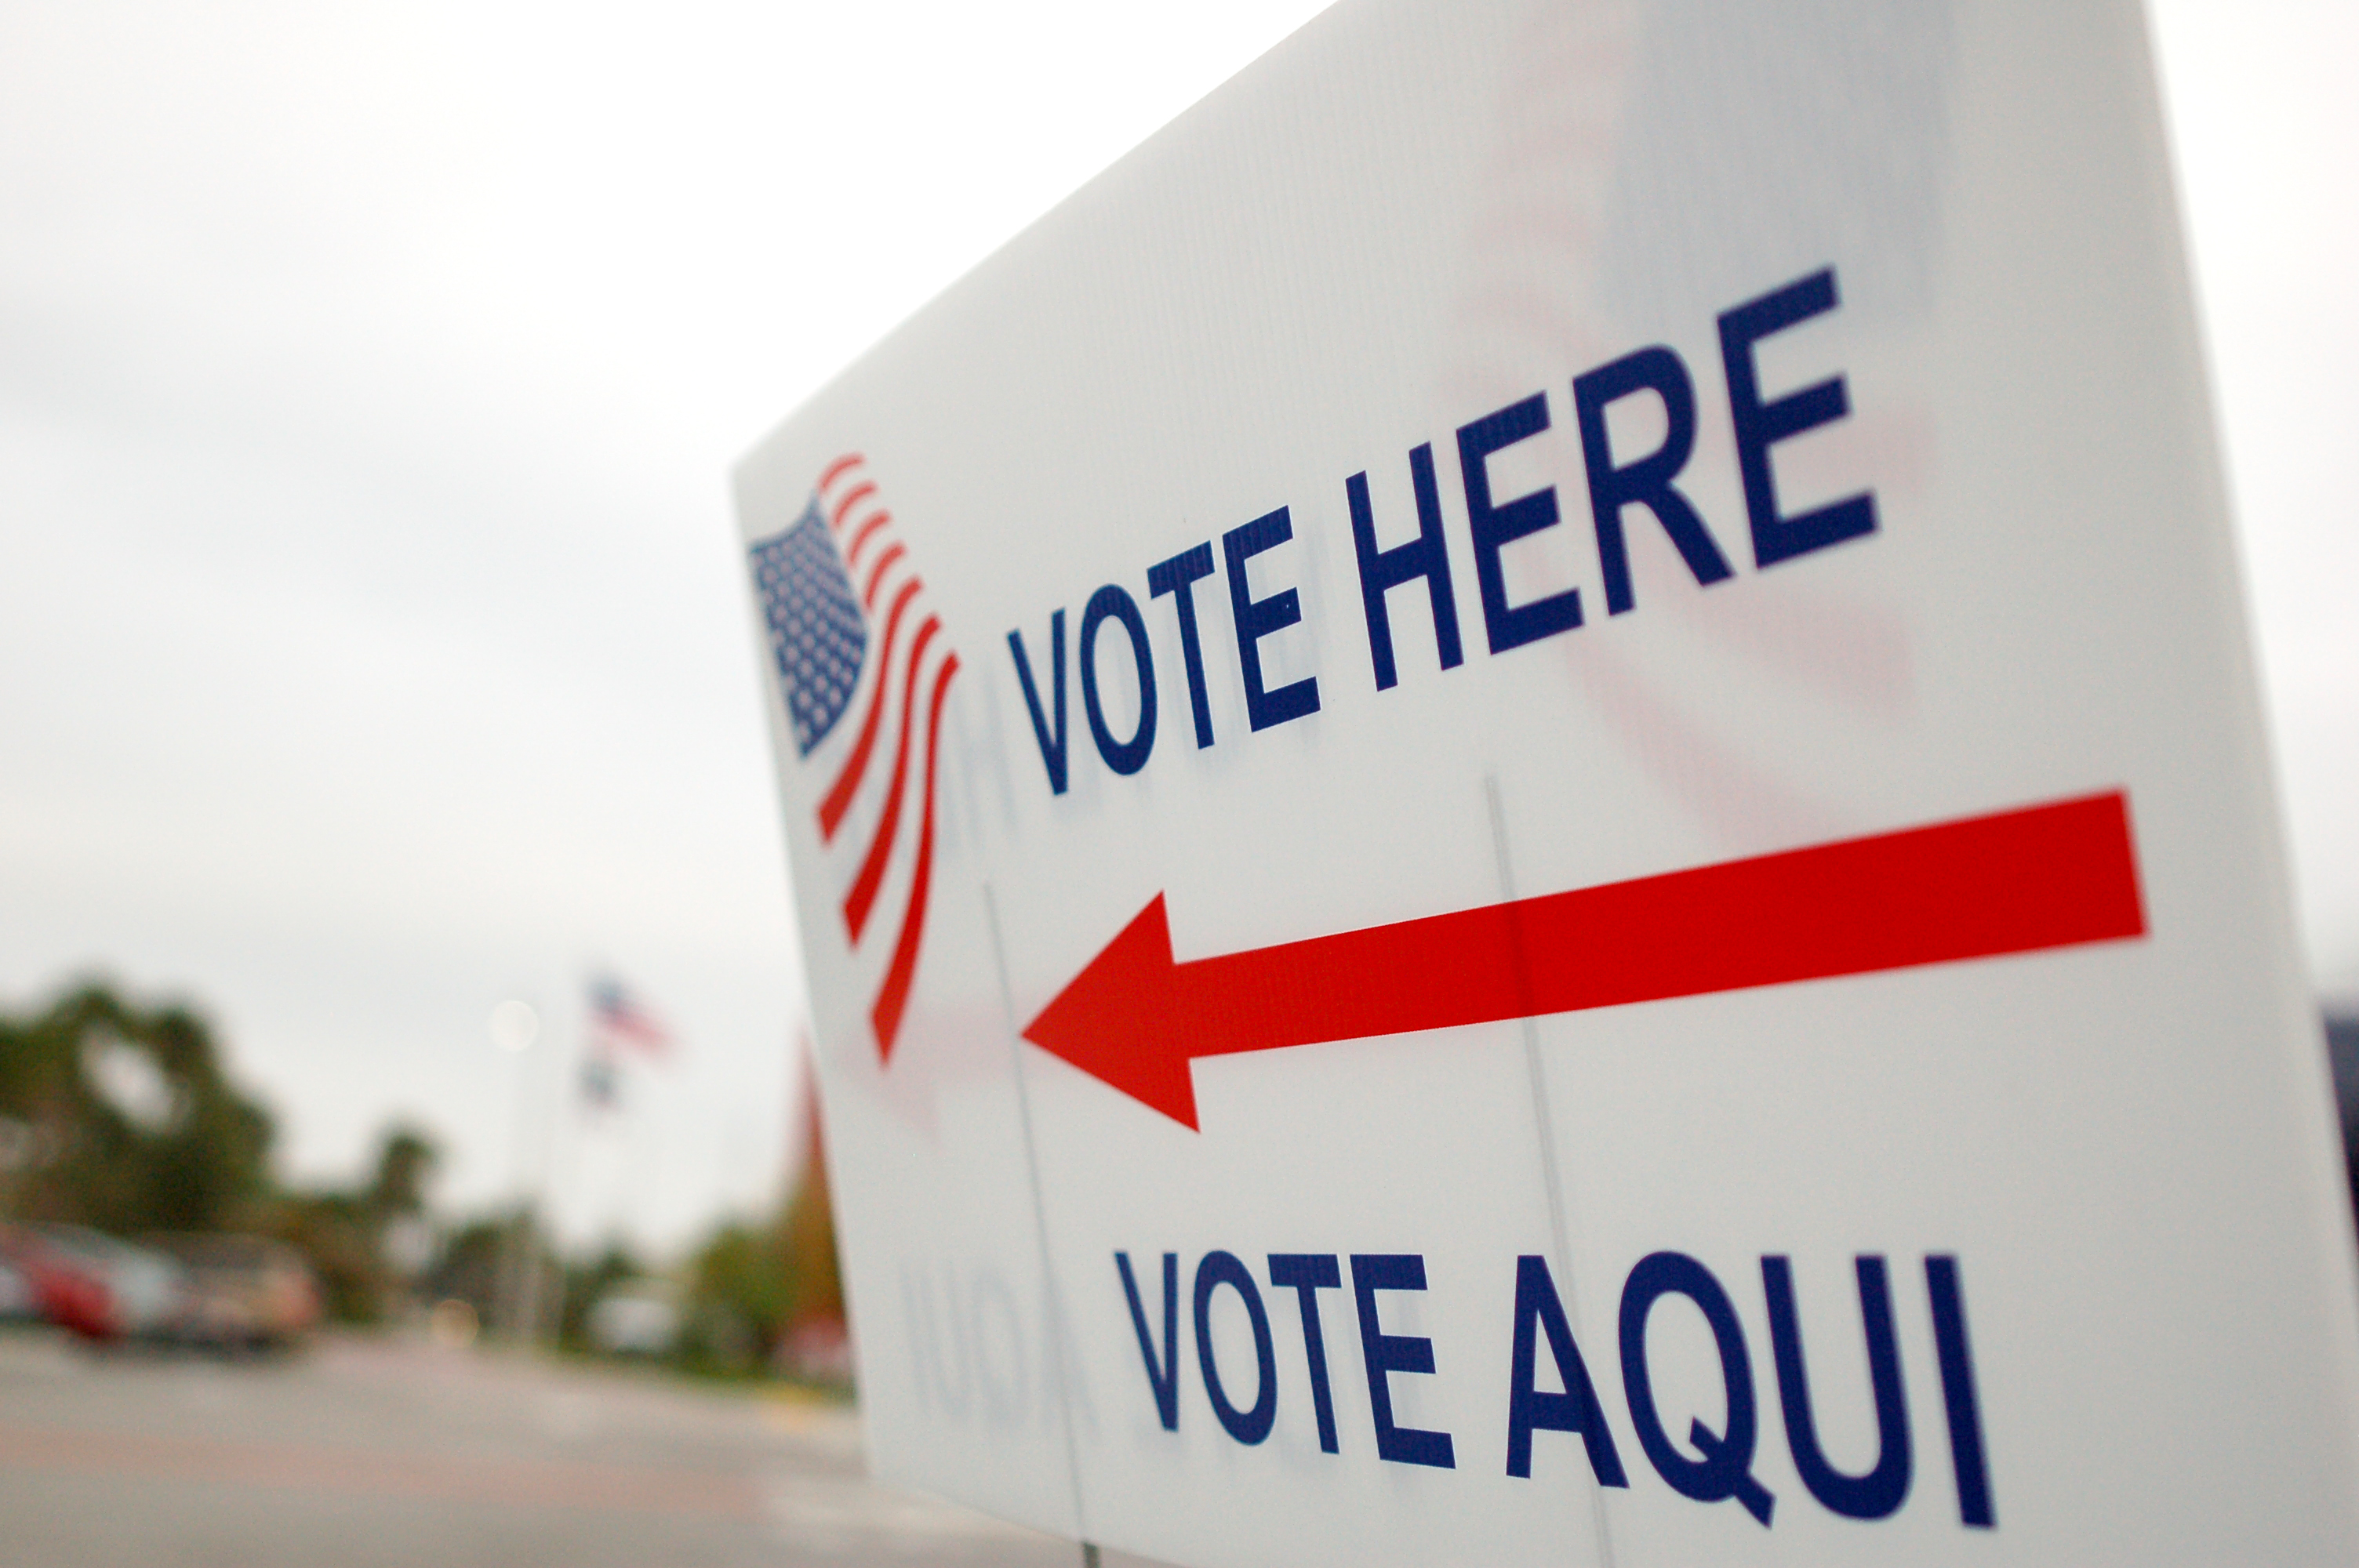 Surge in US Citizenship Applications as Immigrants Demand the Vote